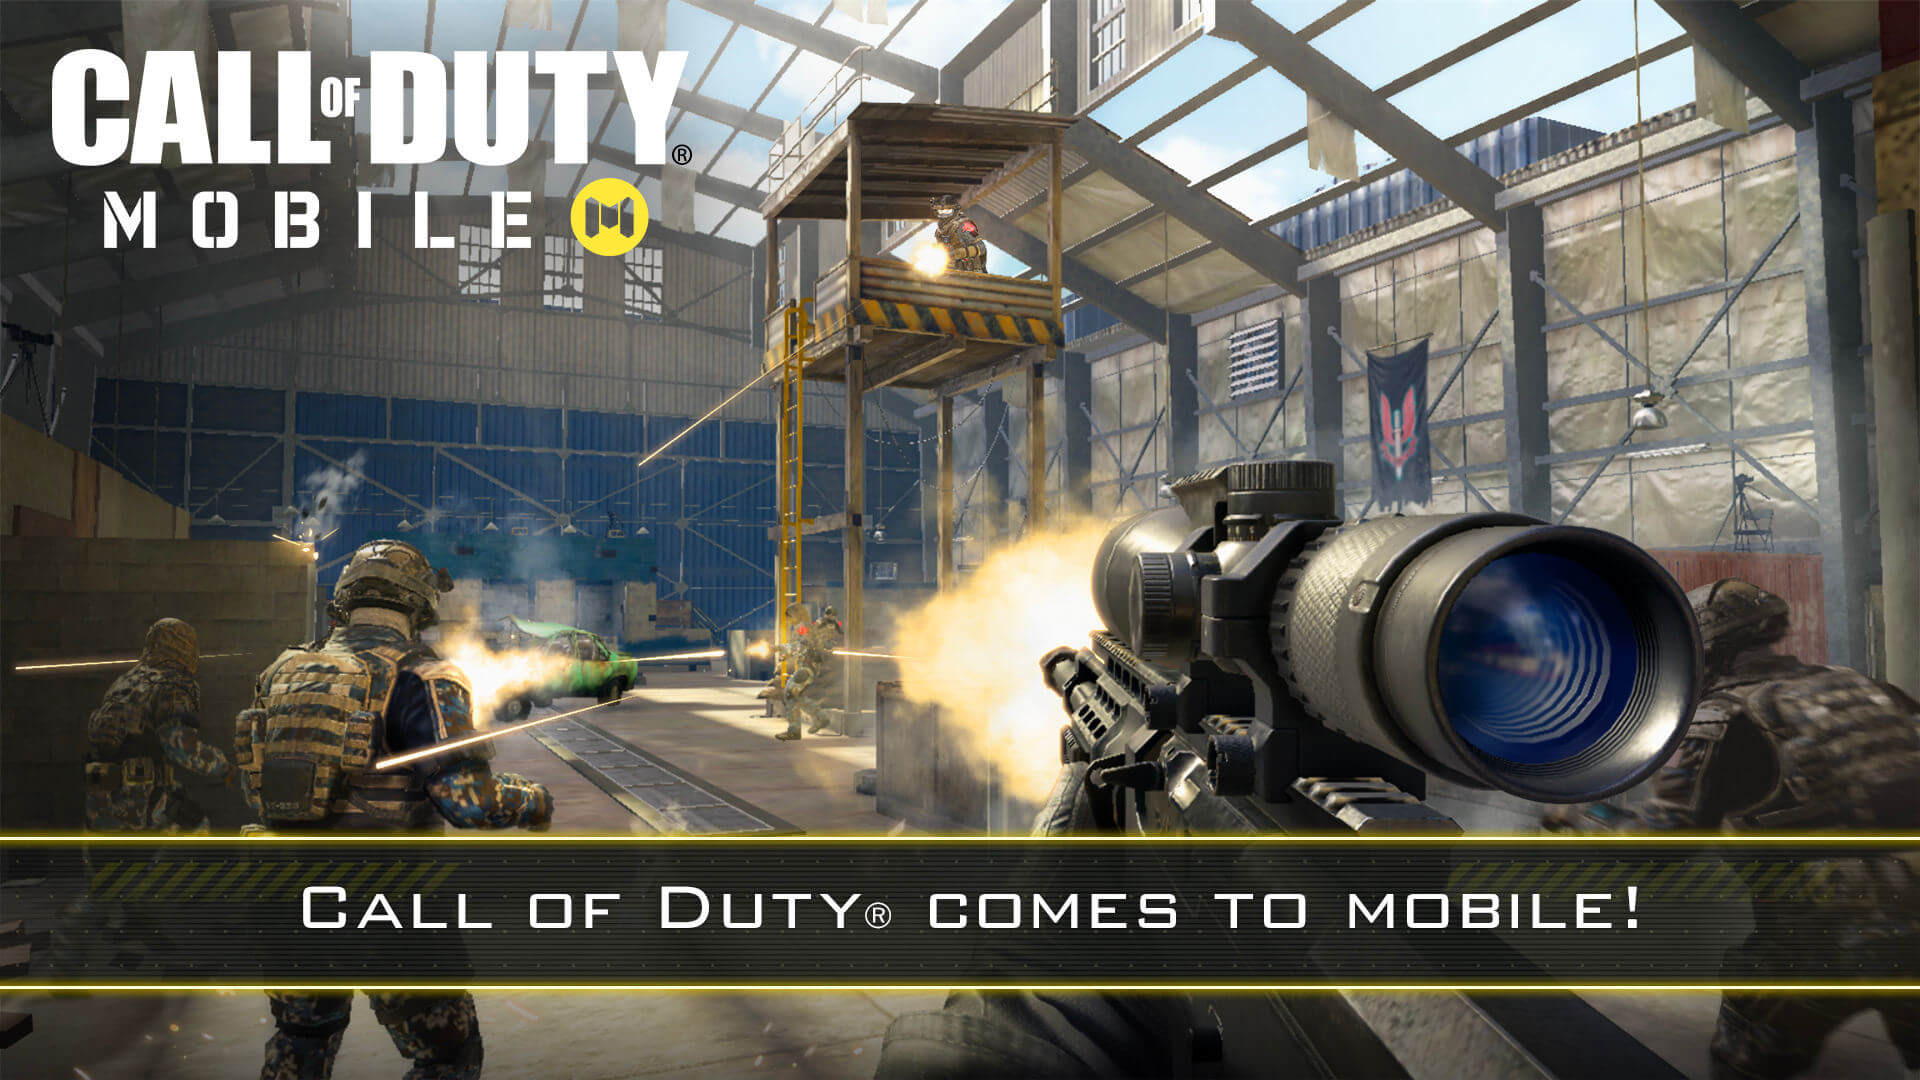 'Call of Duty' is finally Available on Android and iPhones | Competitor to PUBG?